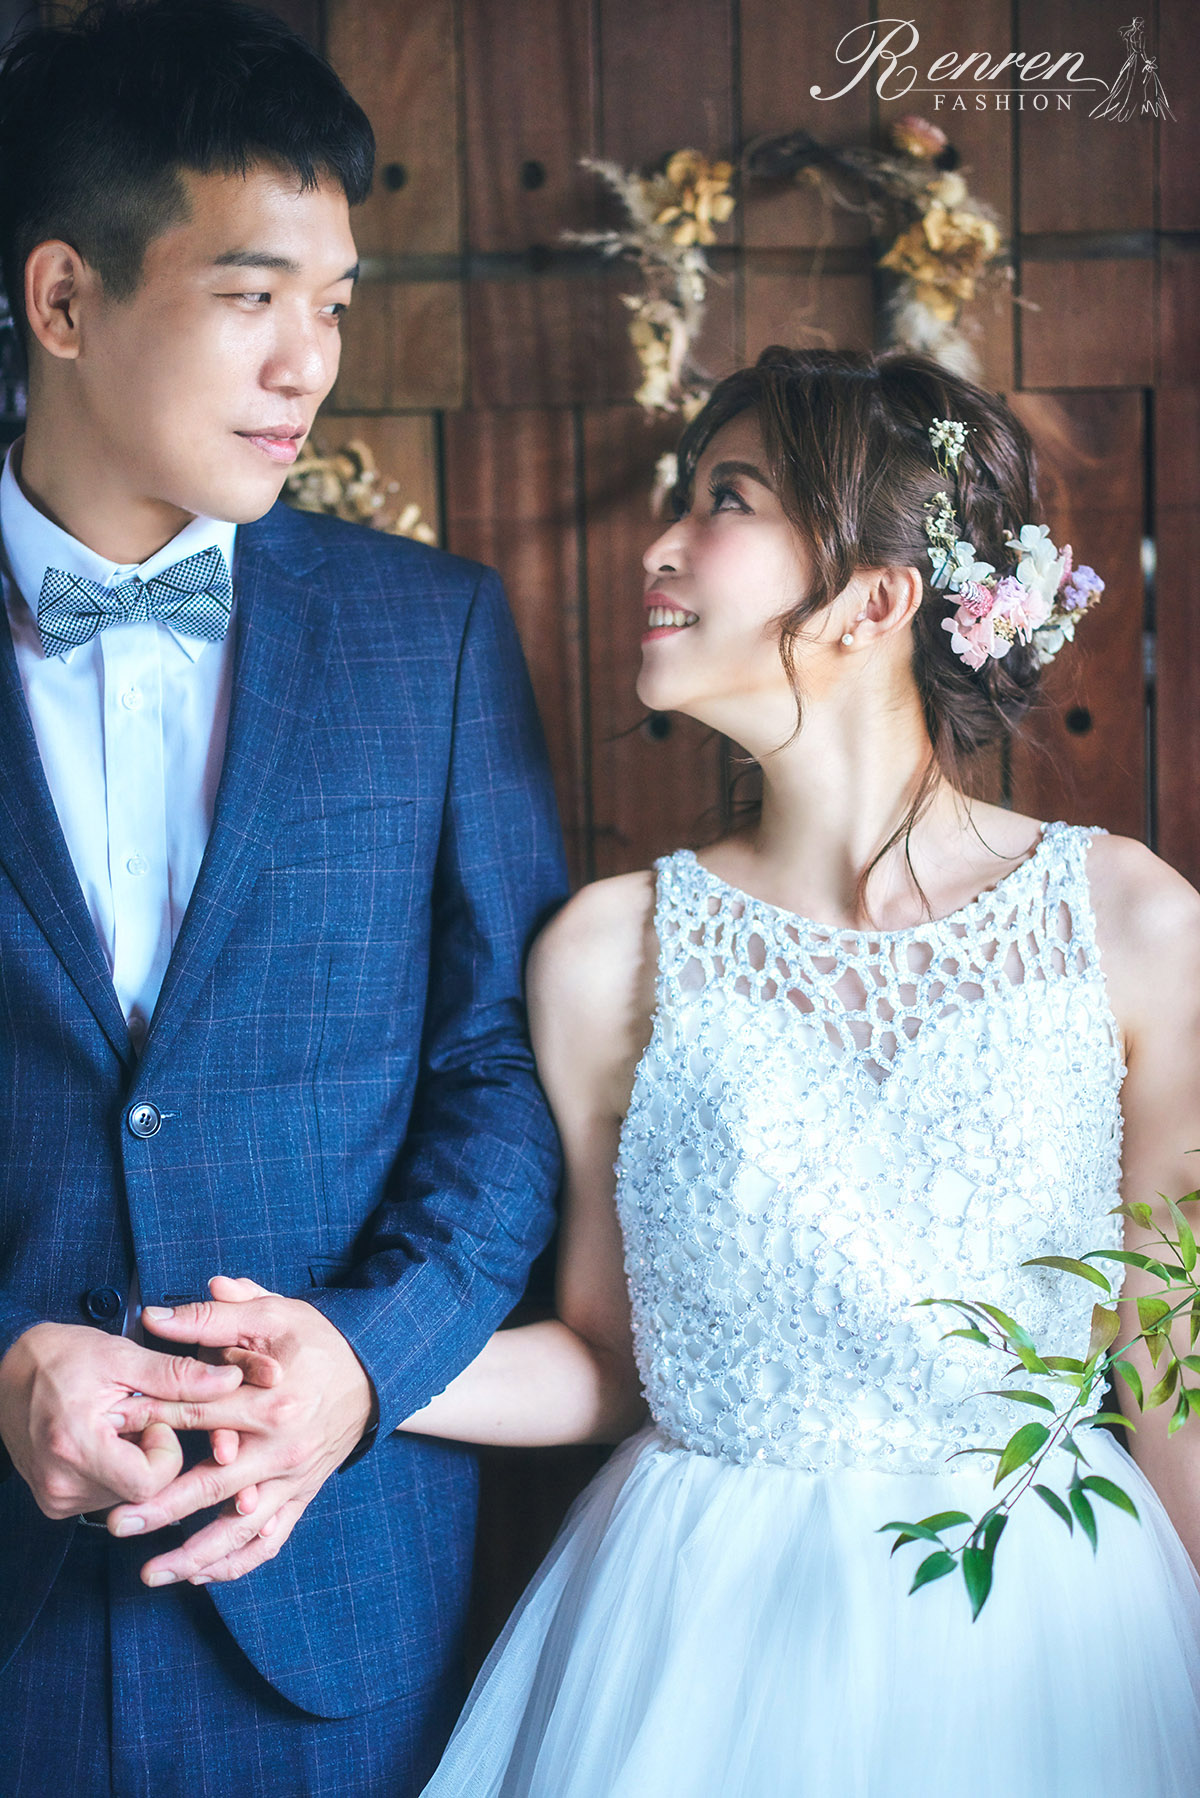 RenRen-Mundo-StylistMei-Wedding-顏氏牧場-婚紗-06